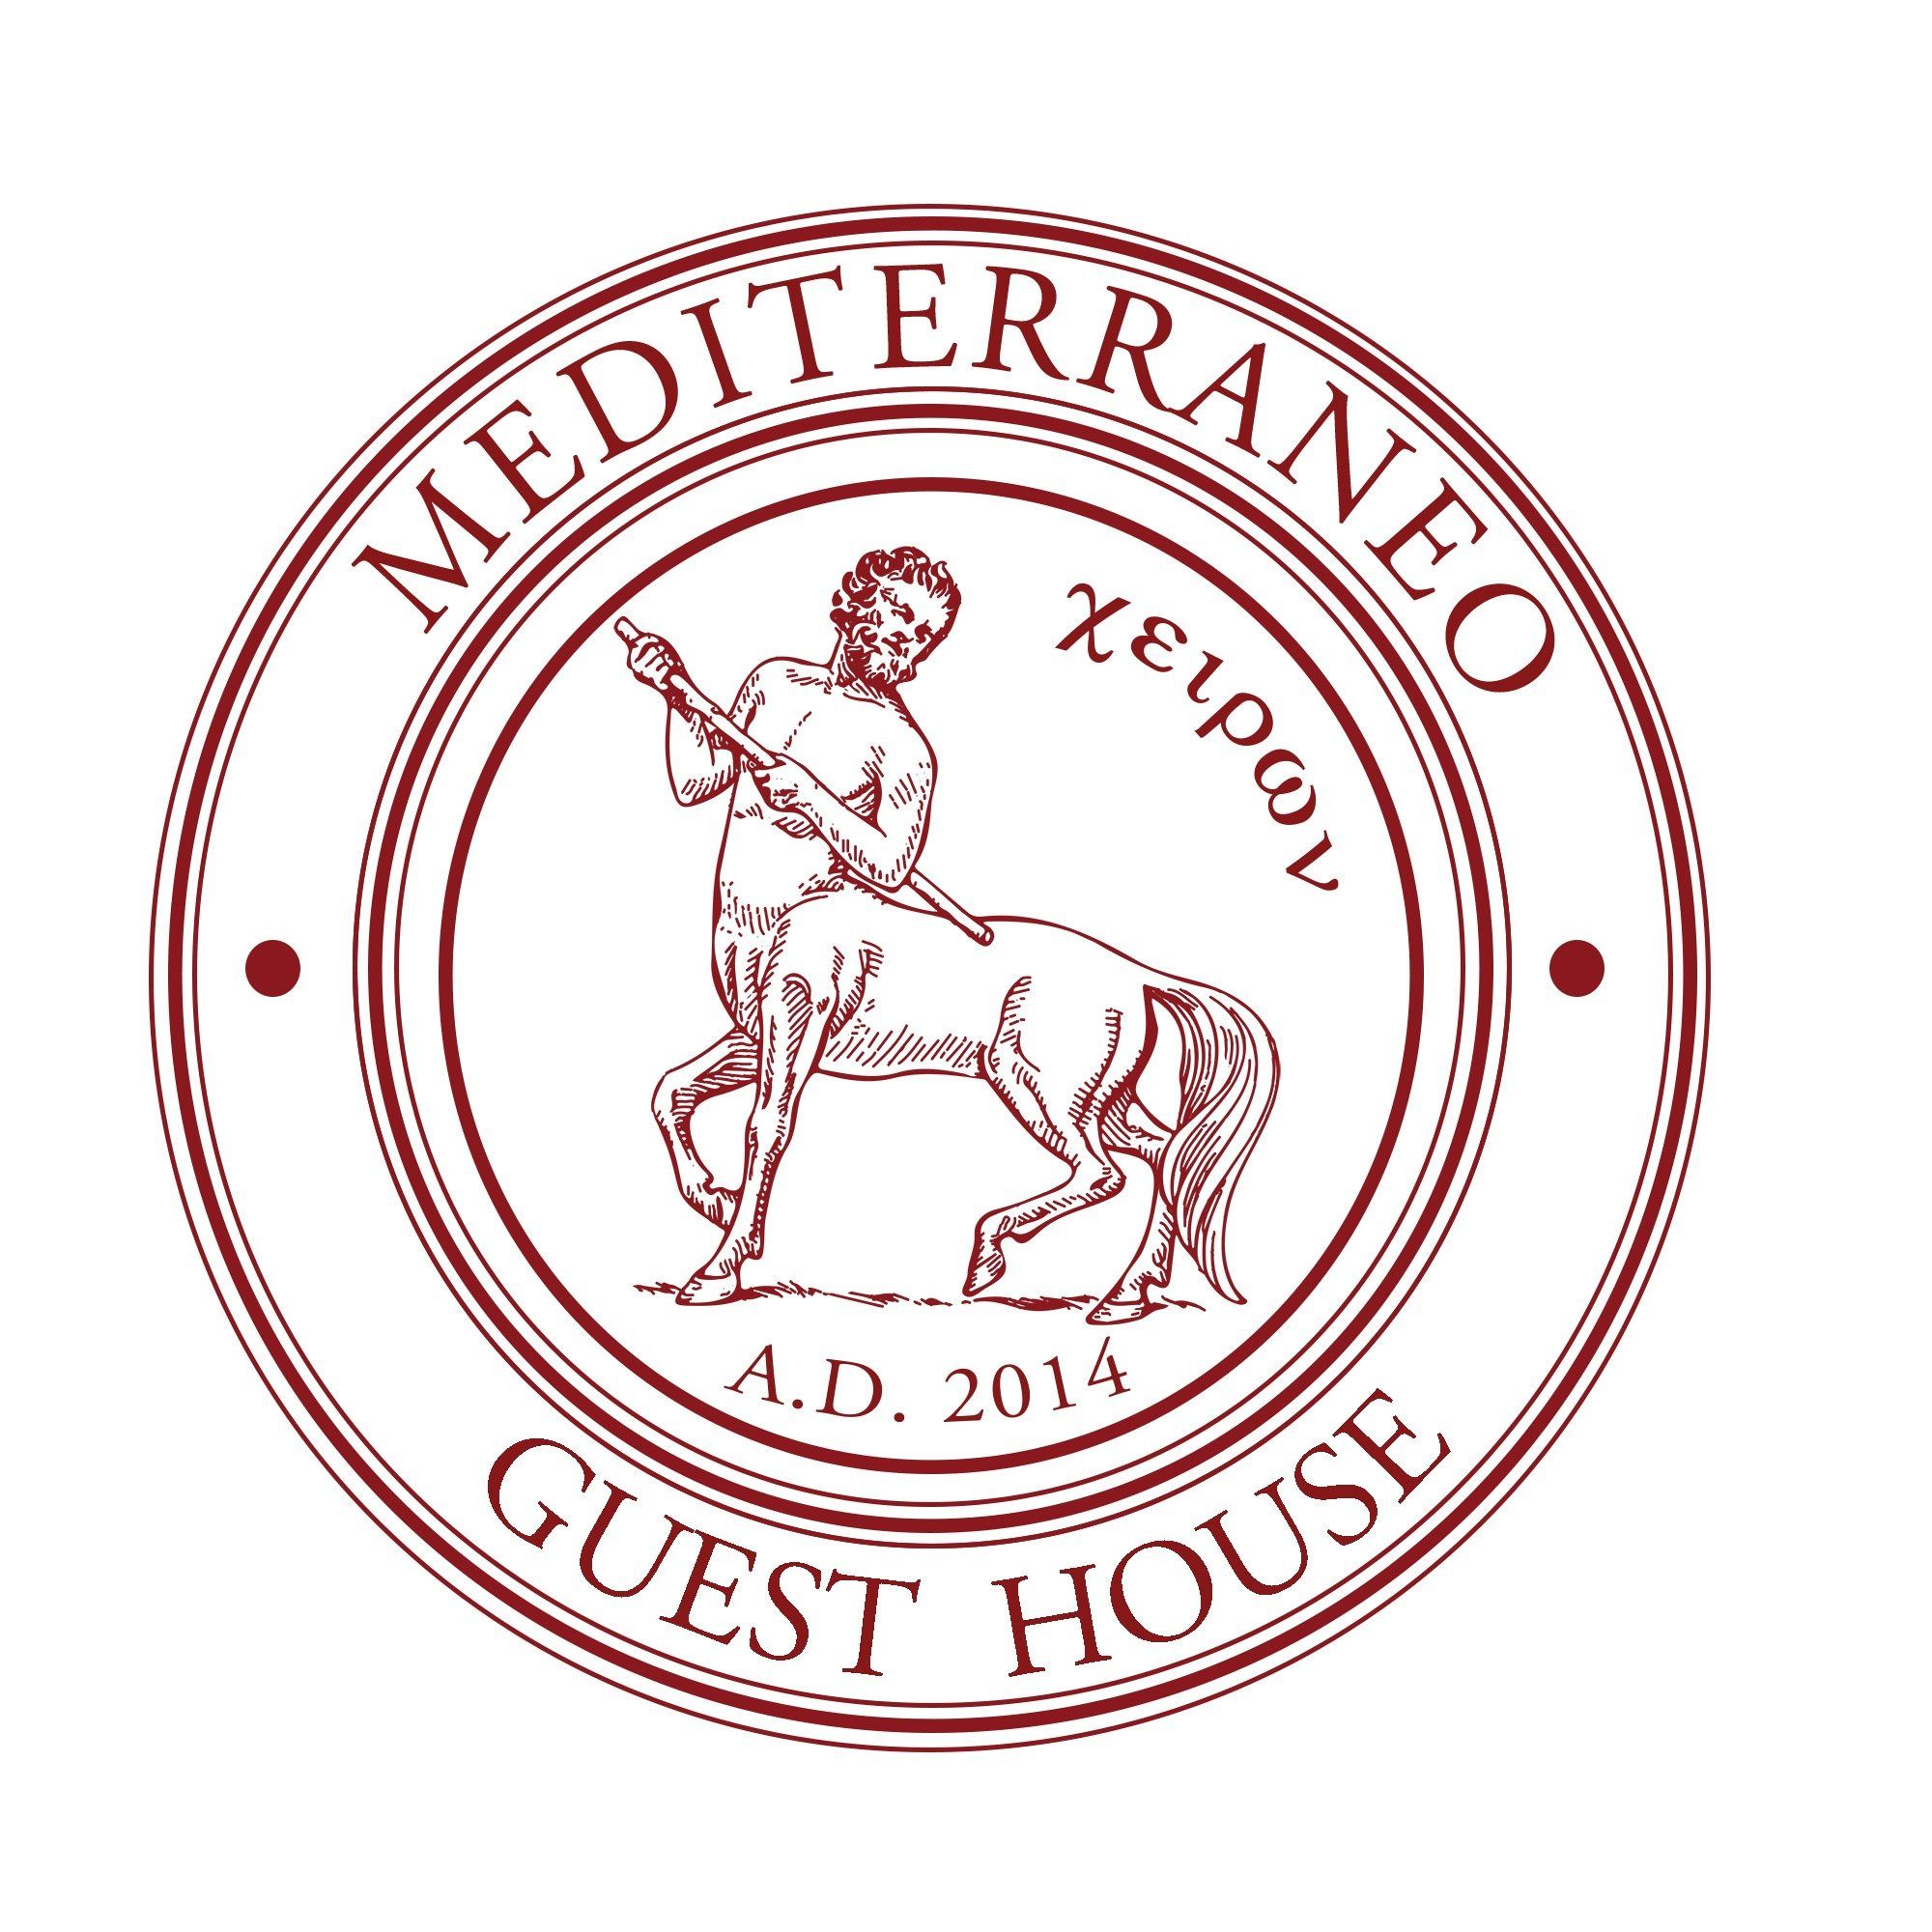 Mediterraneo Guesthouse